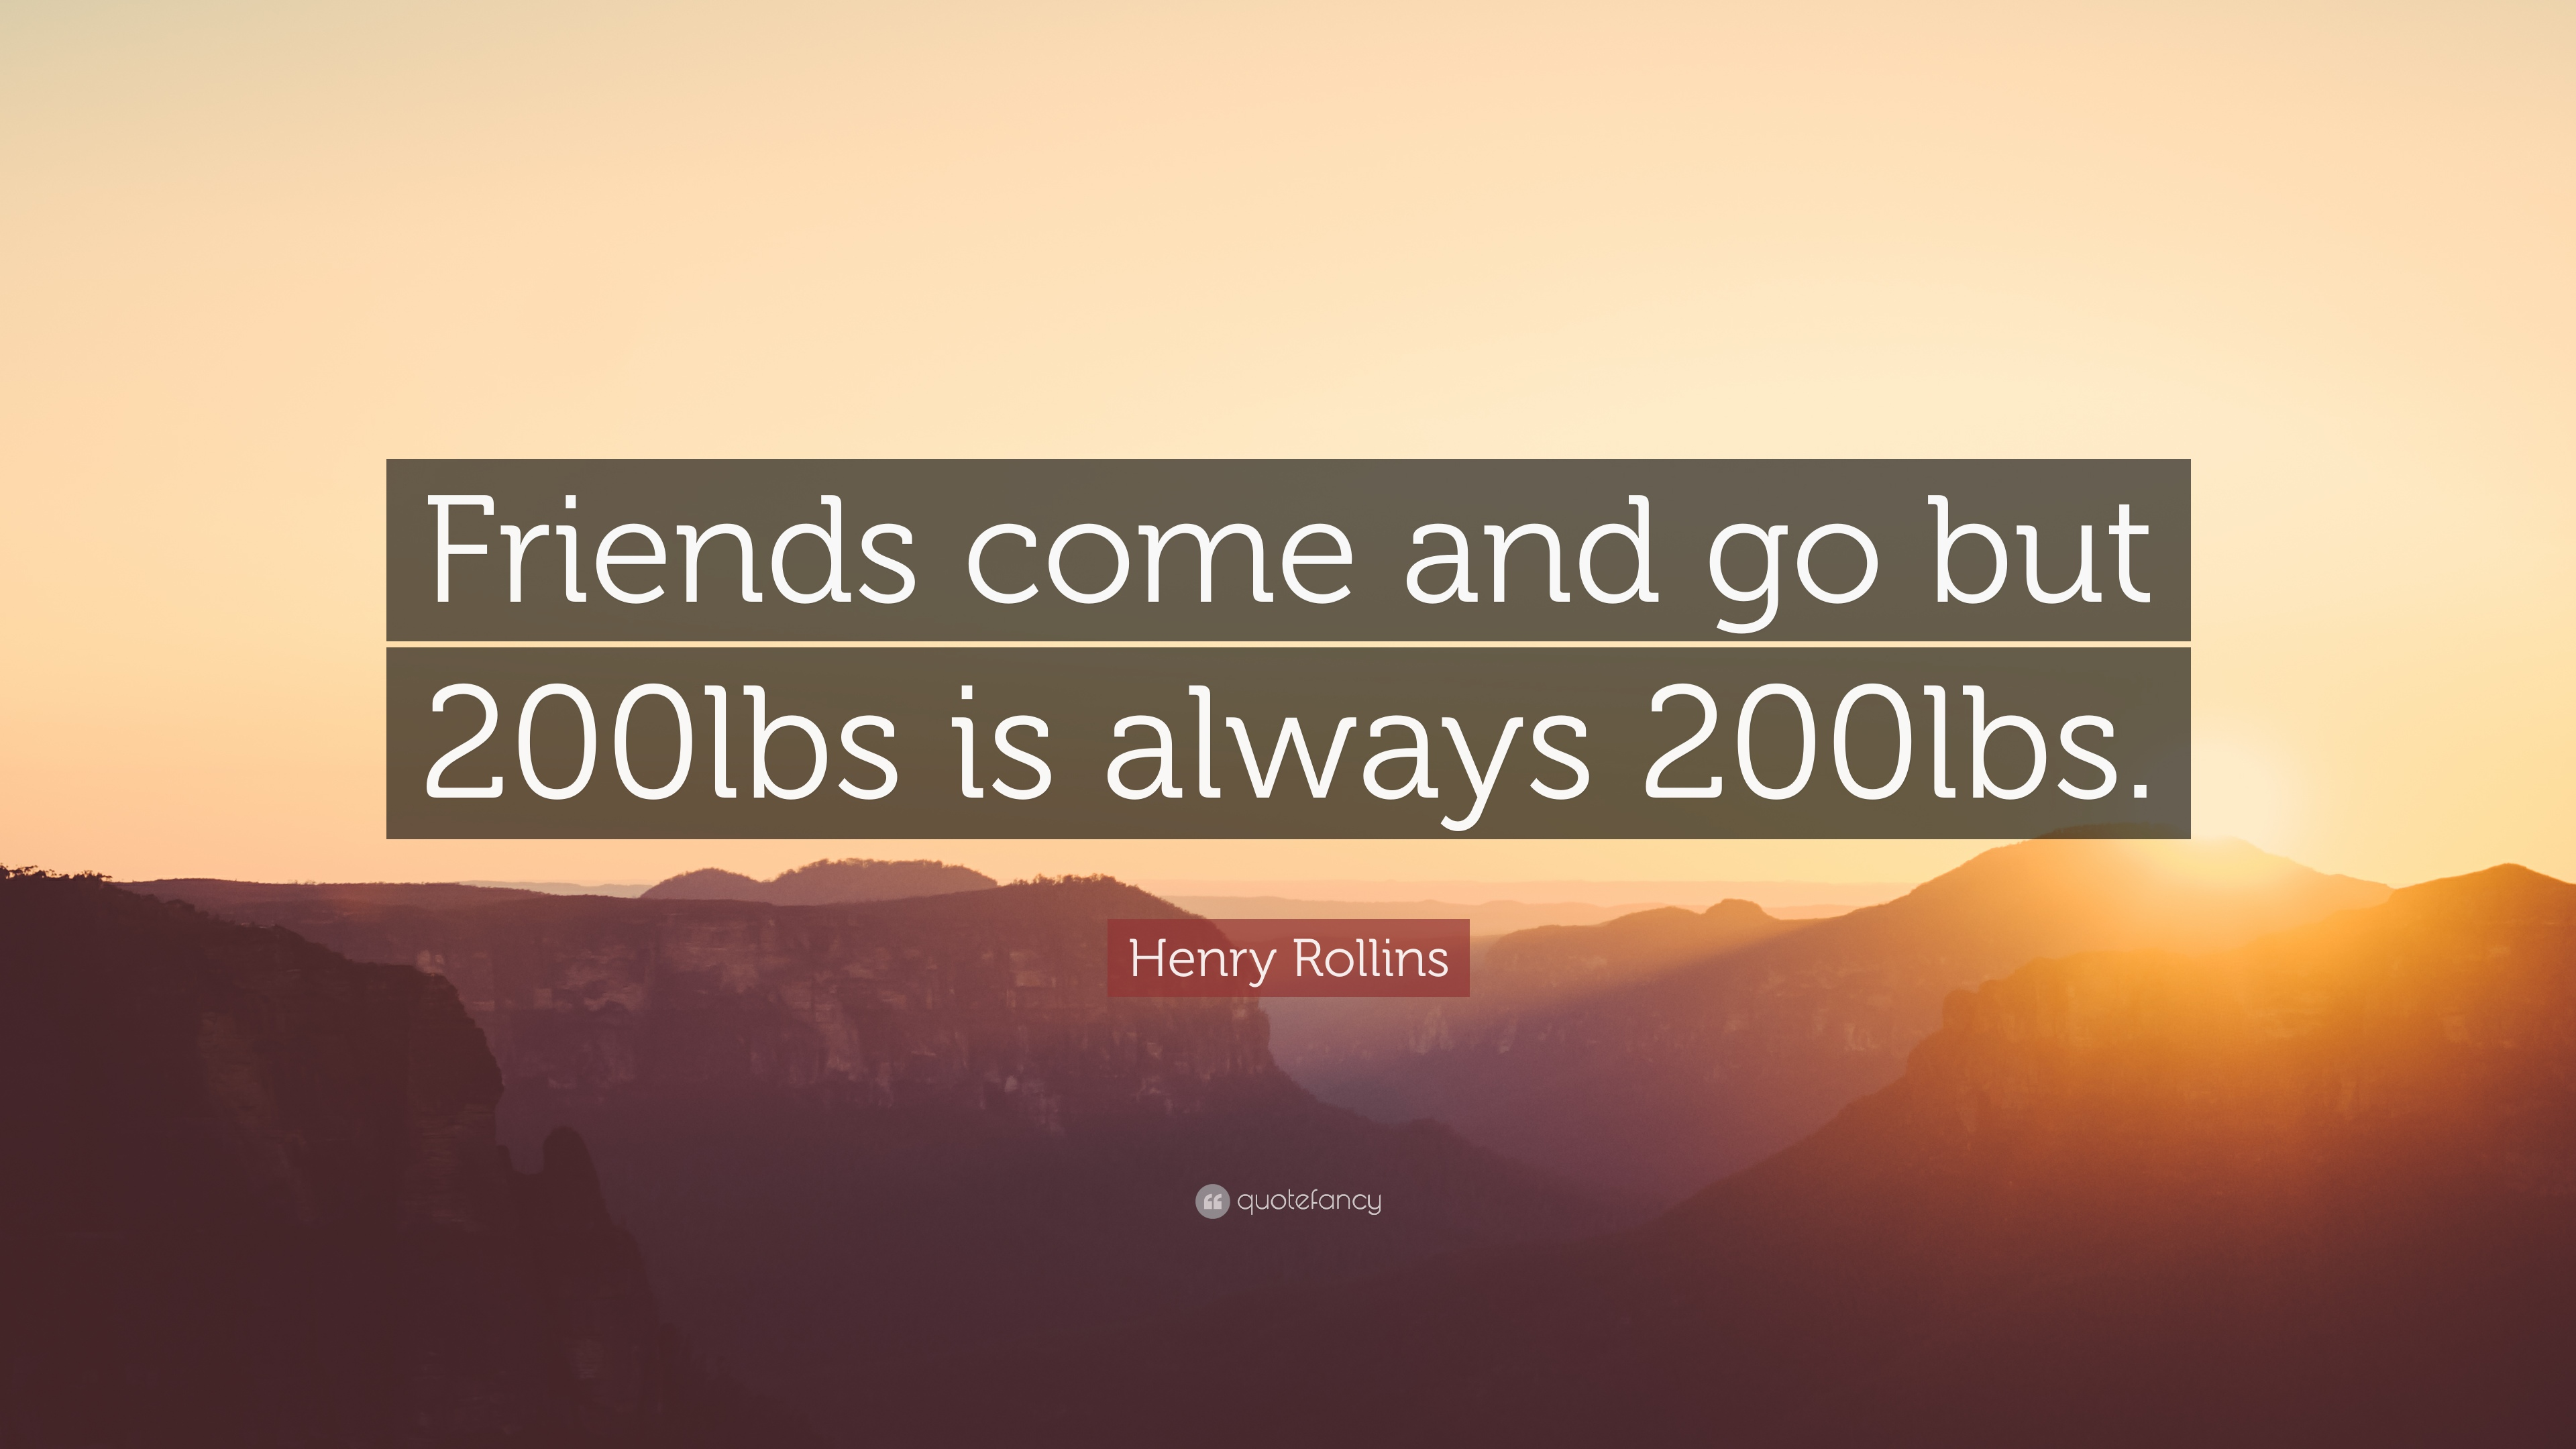 Henry Rollins Quote Friends Come And Go But 200lbs Is Always